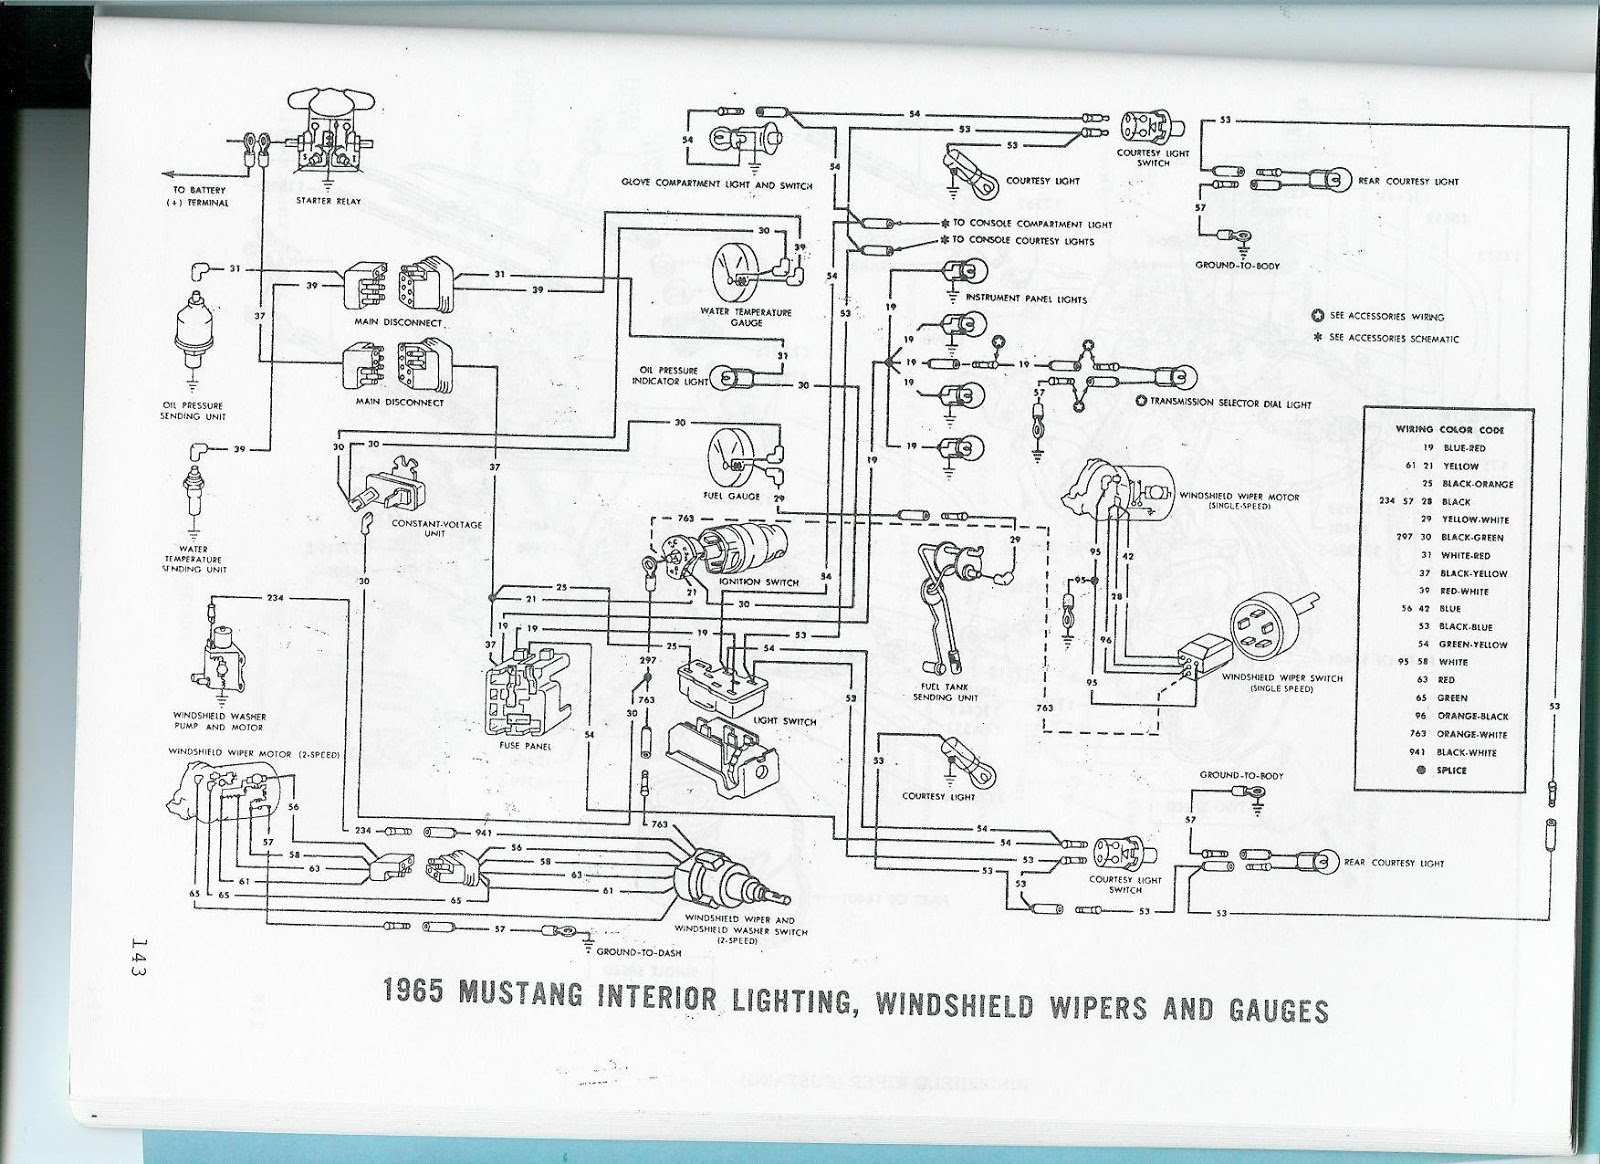 small resolution of 1970 chevelle windshield wiper motor wiring diagram wiring library 1966 chevelle windshield wiper washer wiring diagram 65 chevelle wiper motor wiring